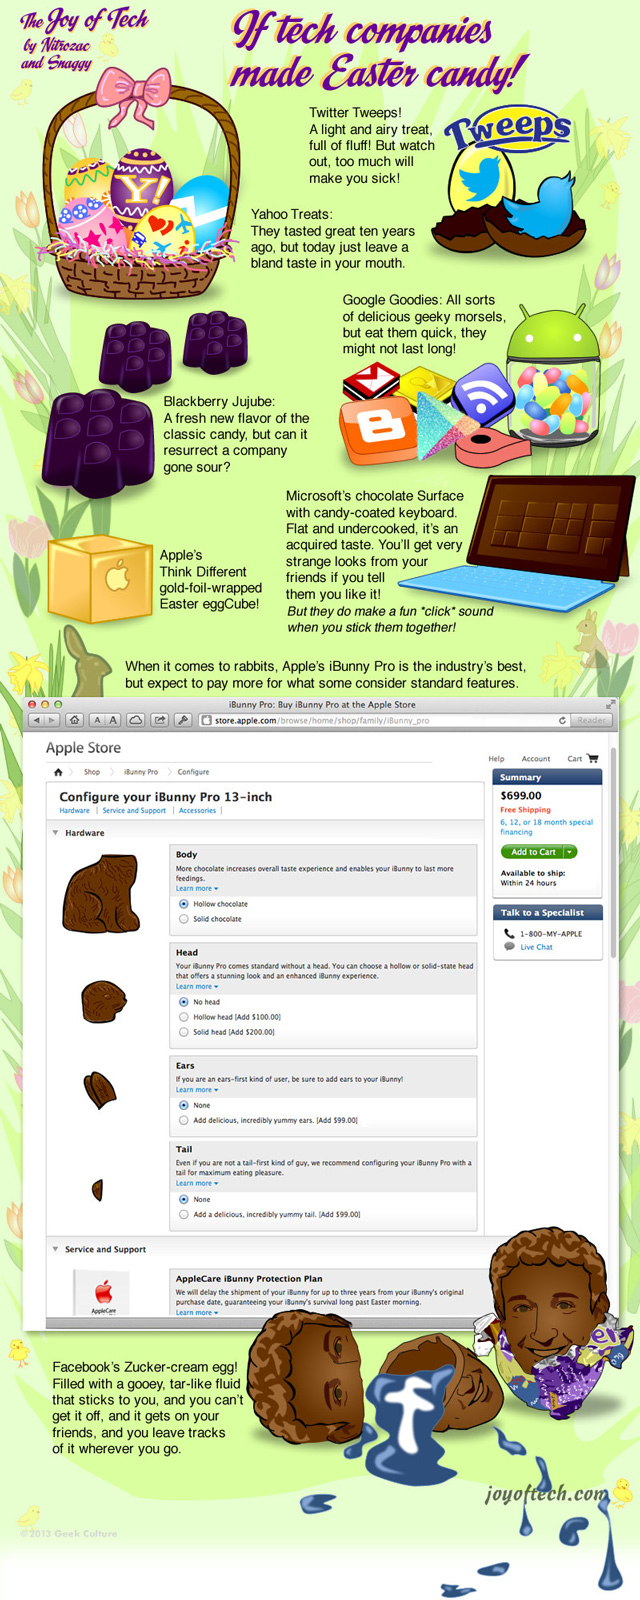 If Tech Companies Made Easter Candy